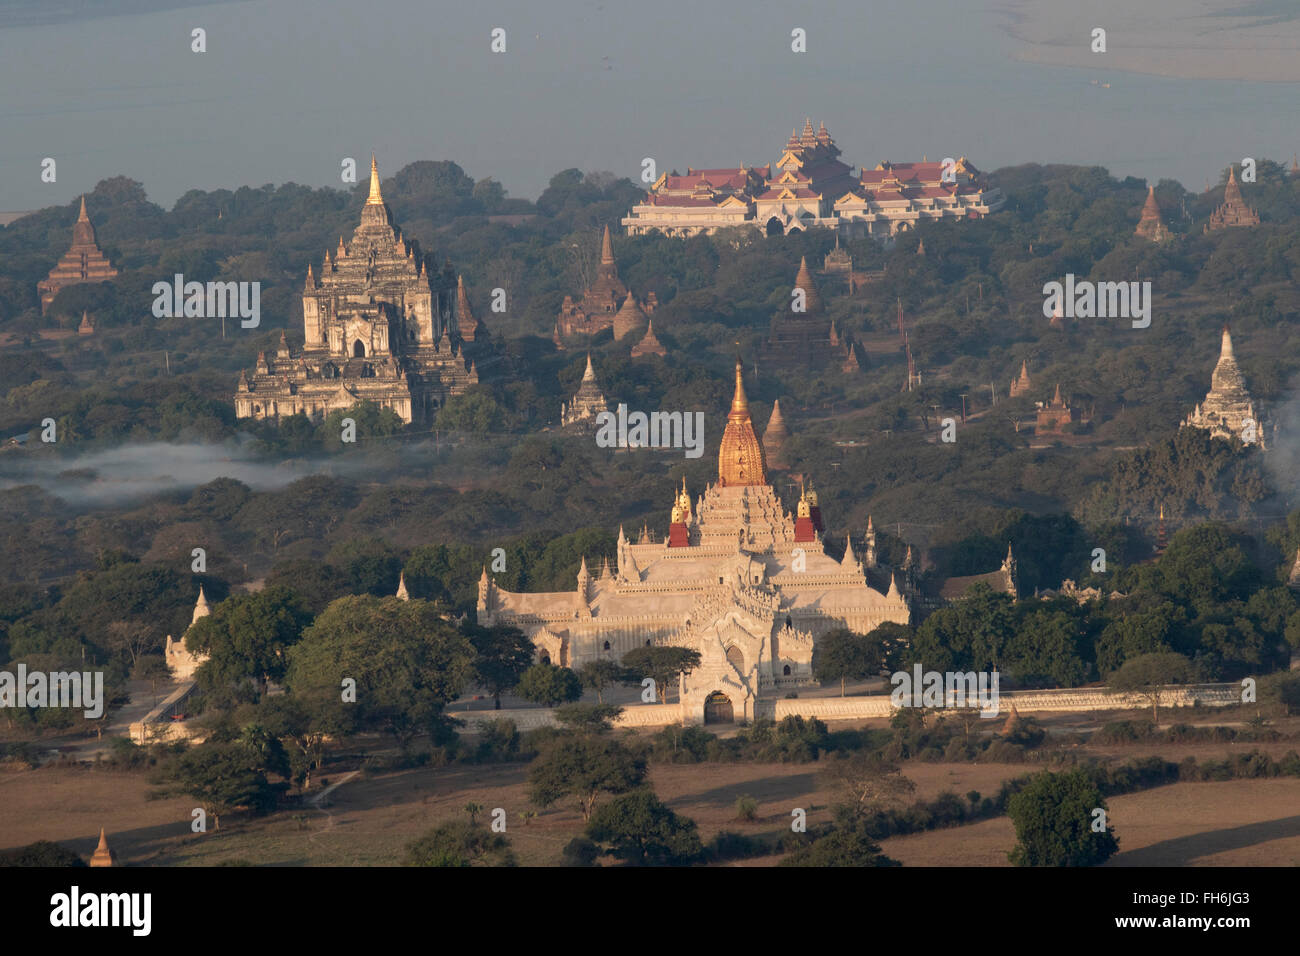 Aerial view of pagodas and shrines in the Archeological Zone Bagan,Myanmar - Stock Image